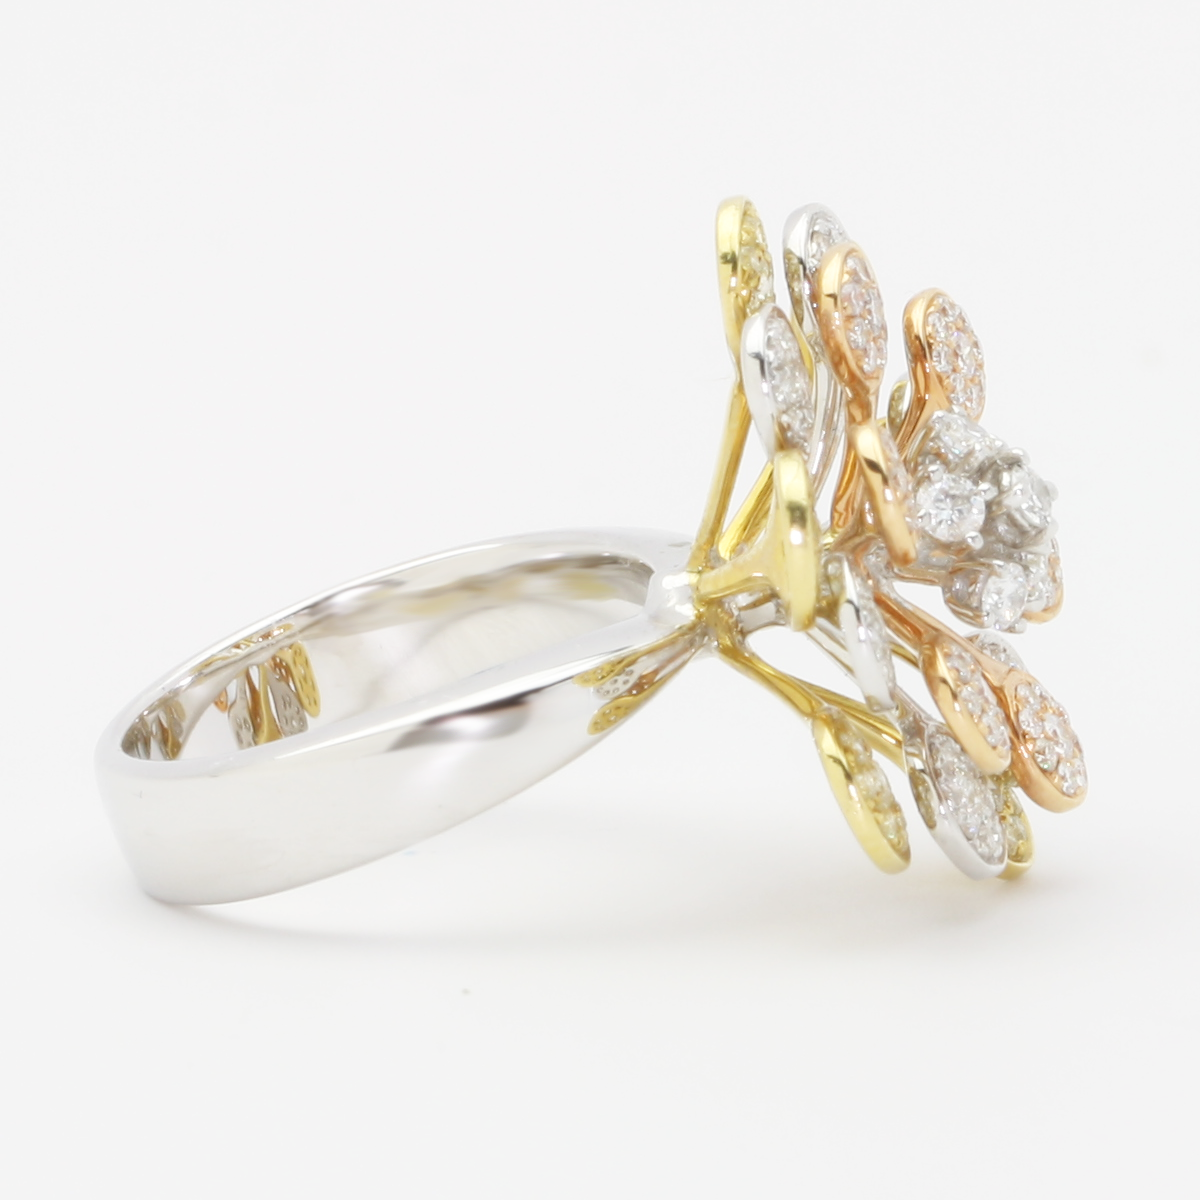 3 Tier Yellow White Rose Gold And Diamond Flower Ring By Lanae